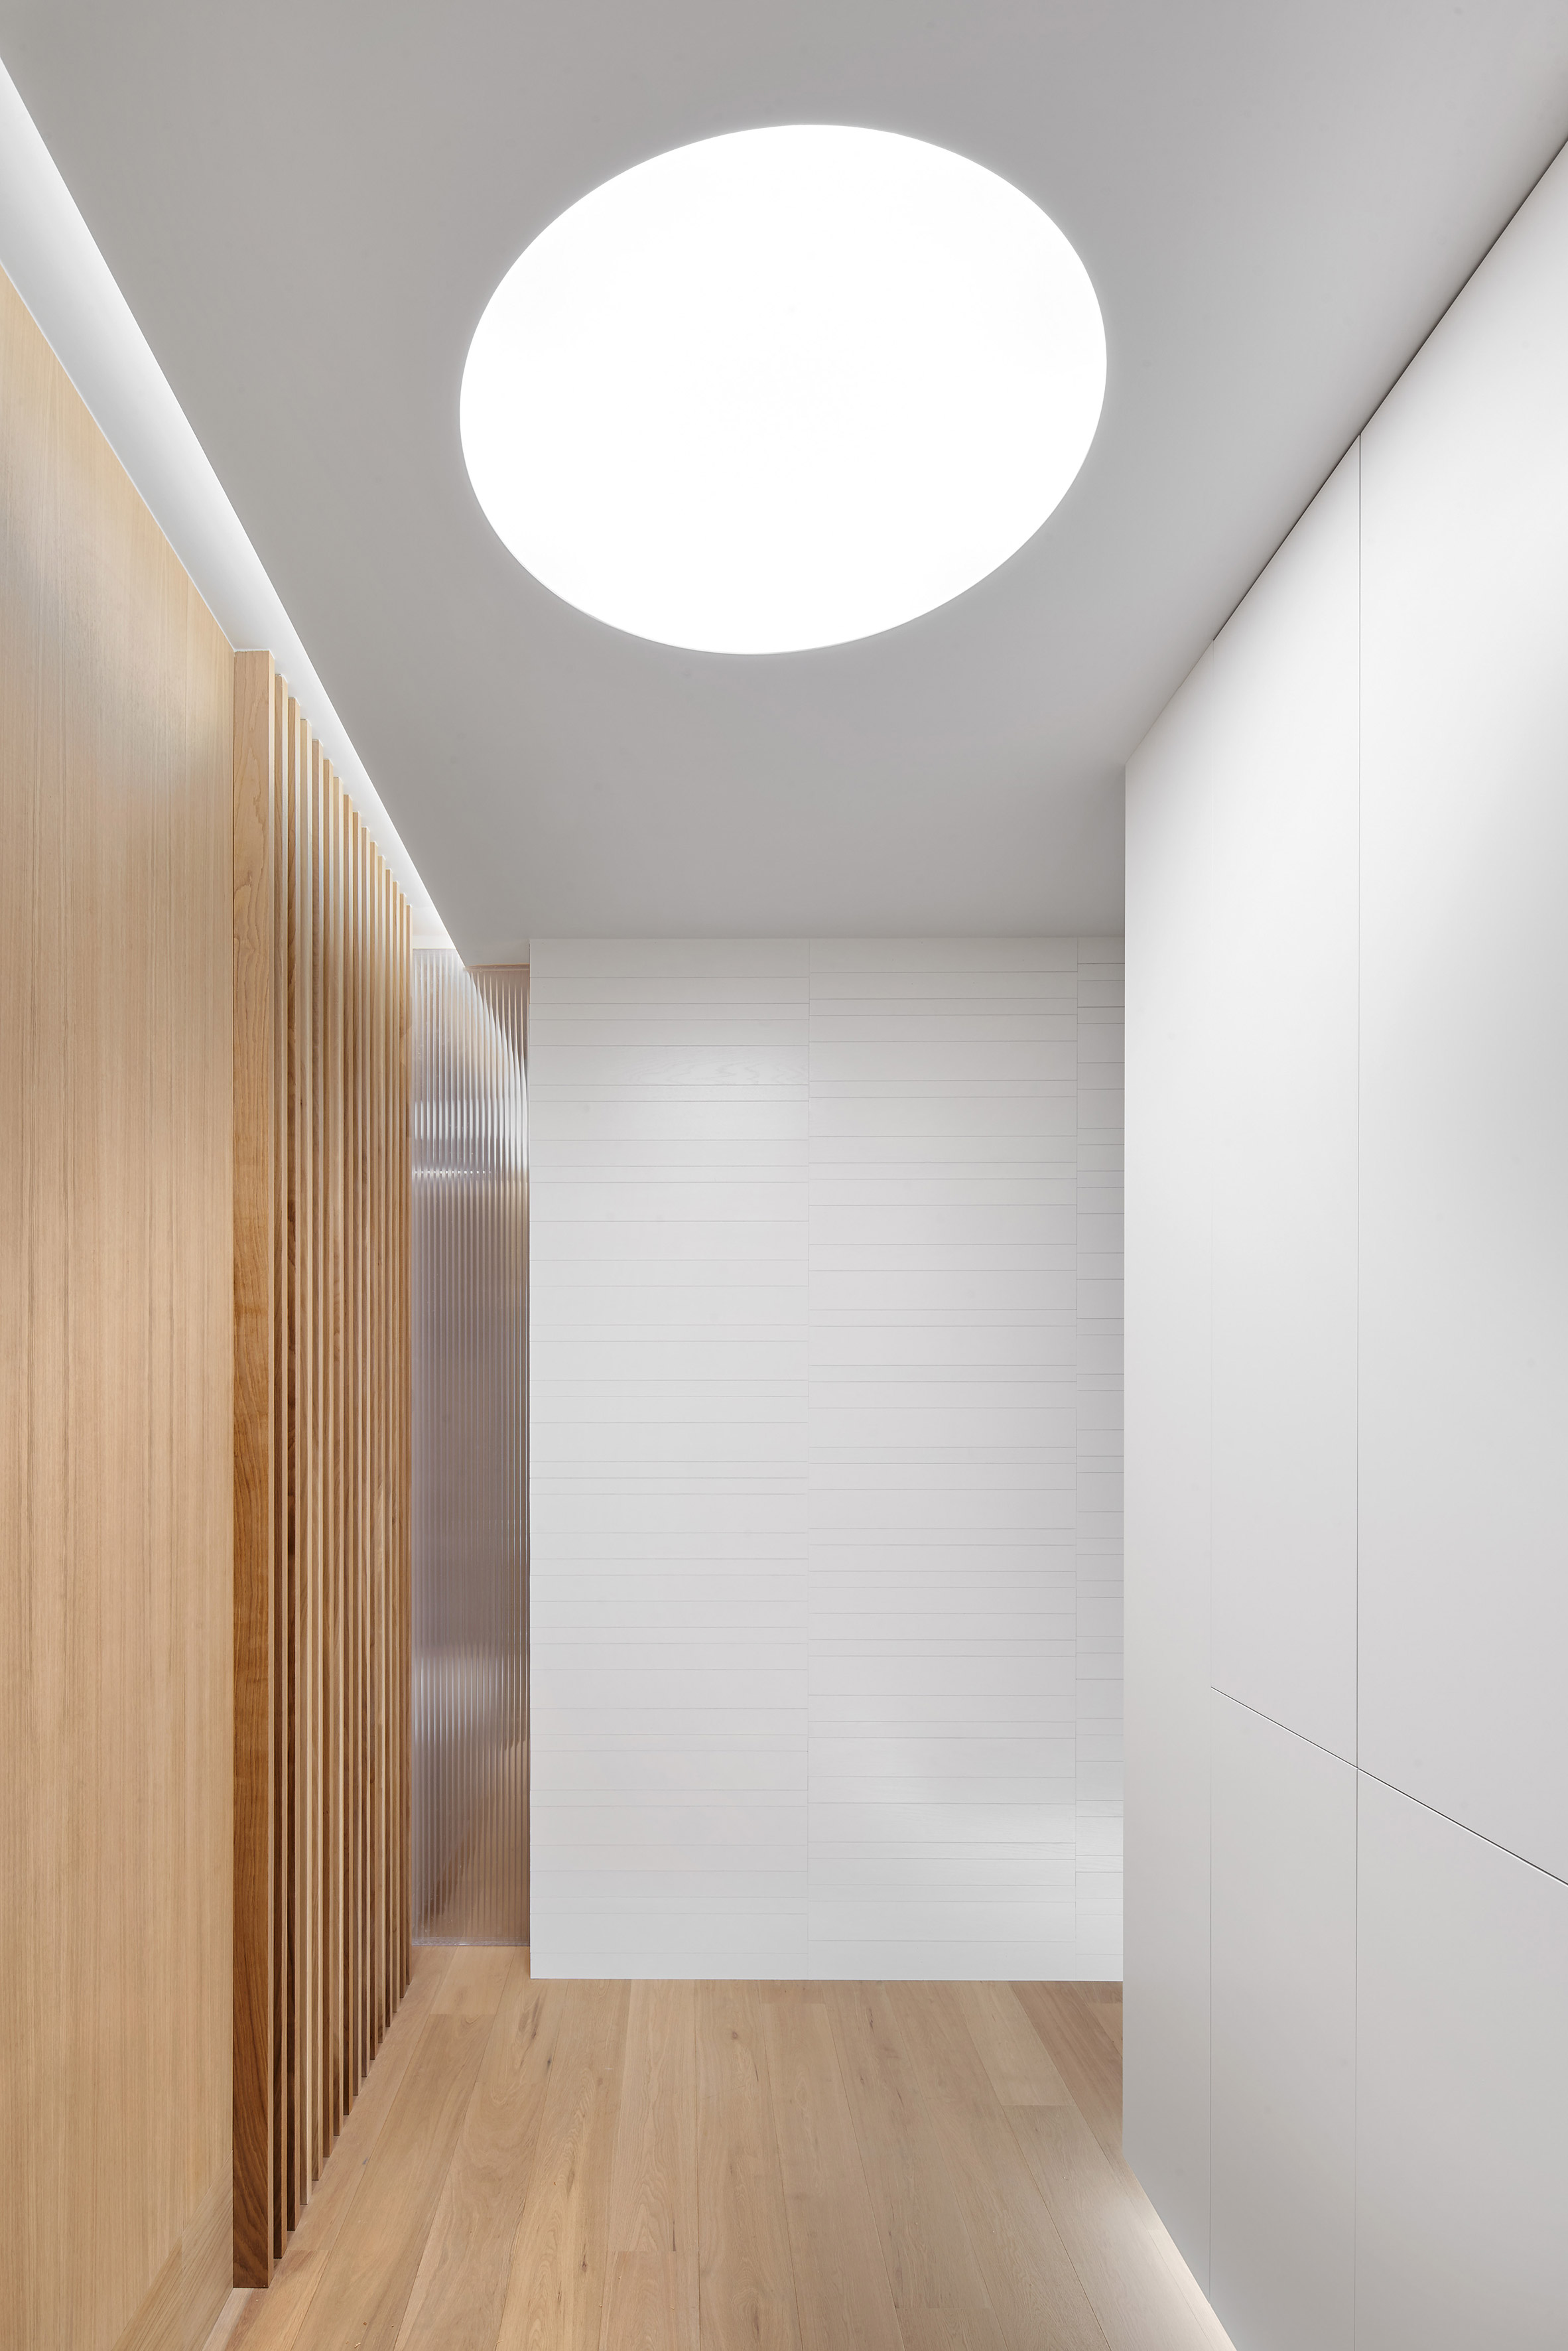 Interiors of Casa P82, designed by Lucas y Hernández-Gil